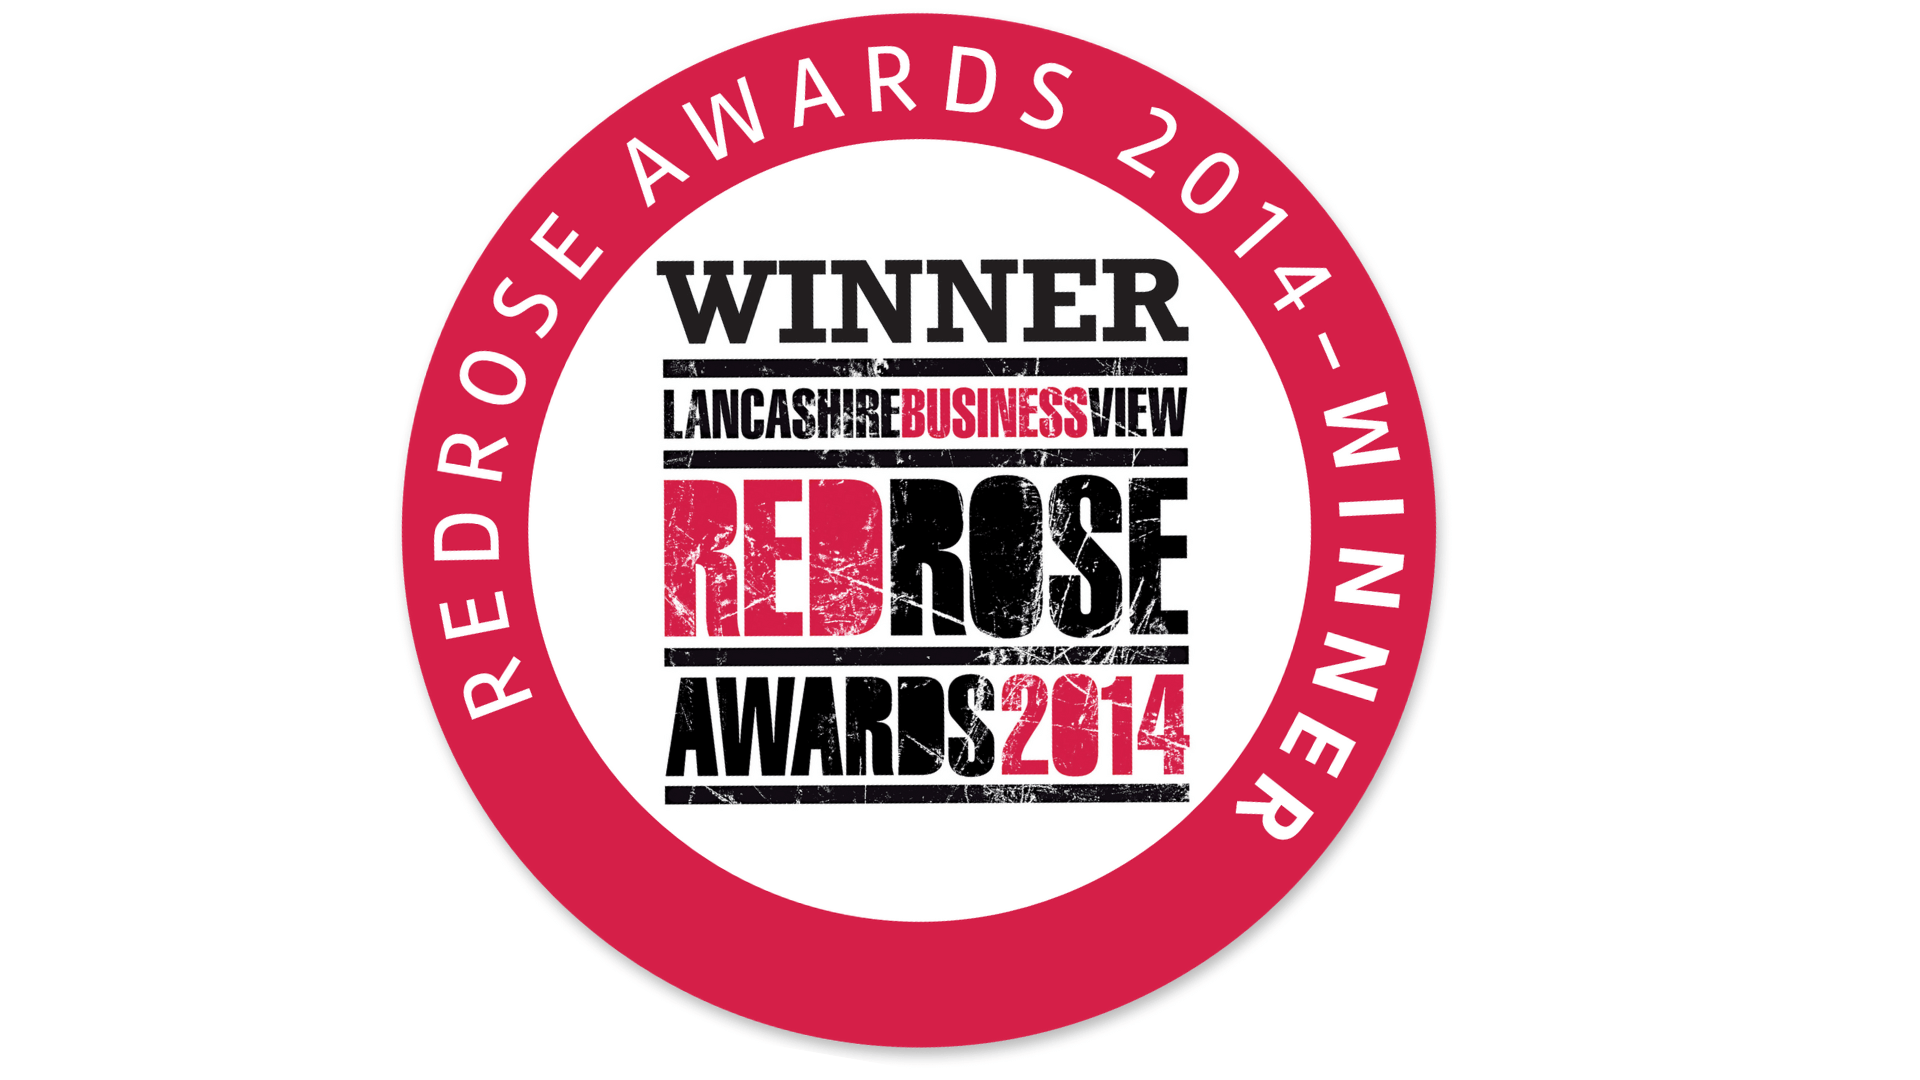 FUNDA Active Lancashire Red Rose Award Winners